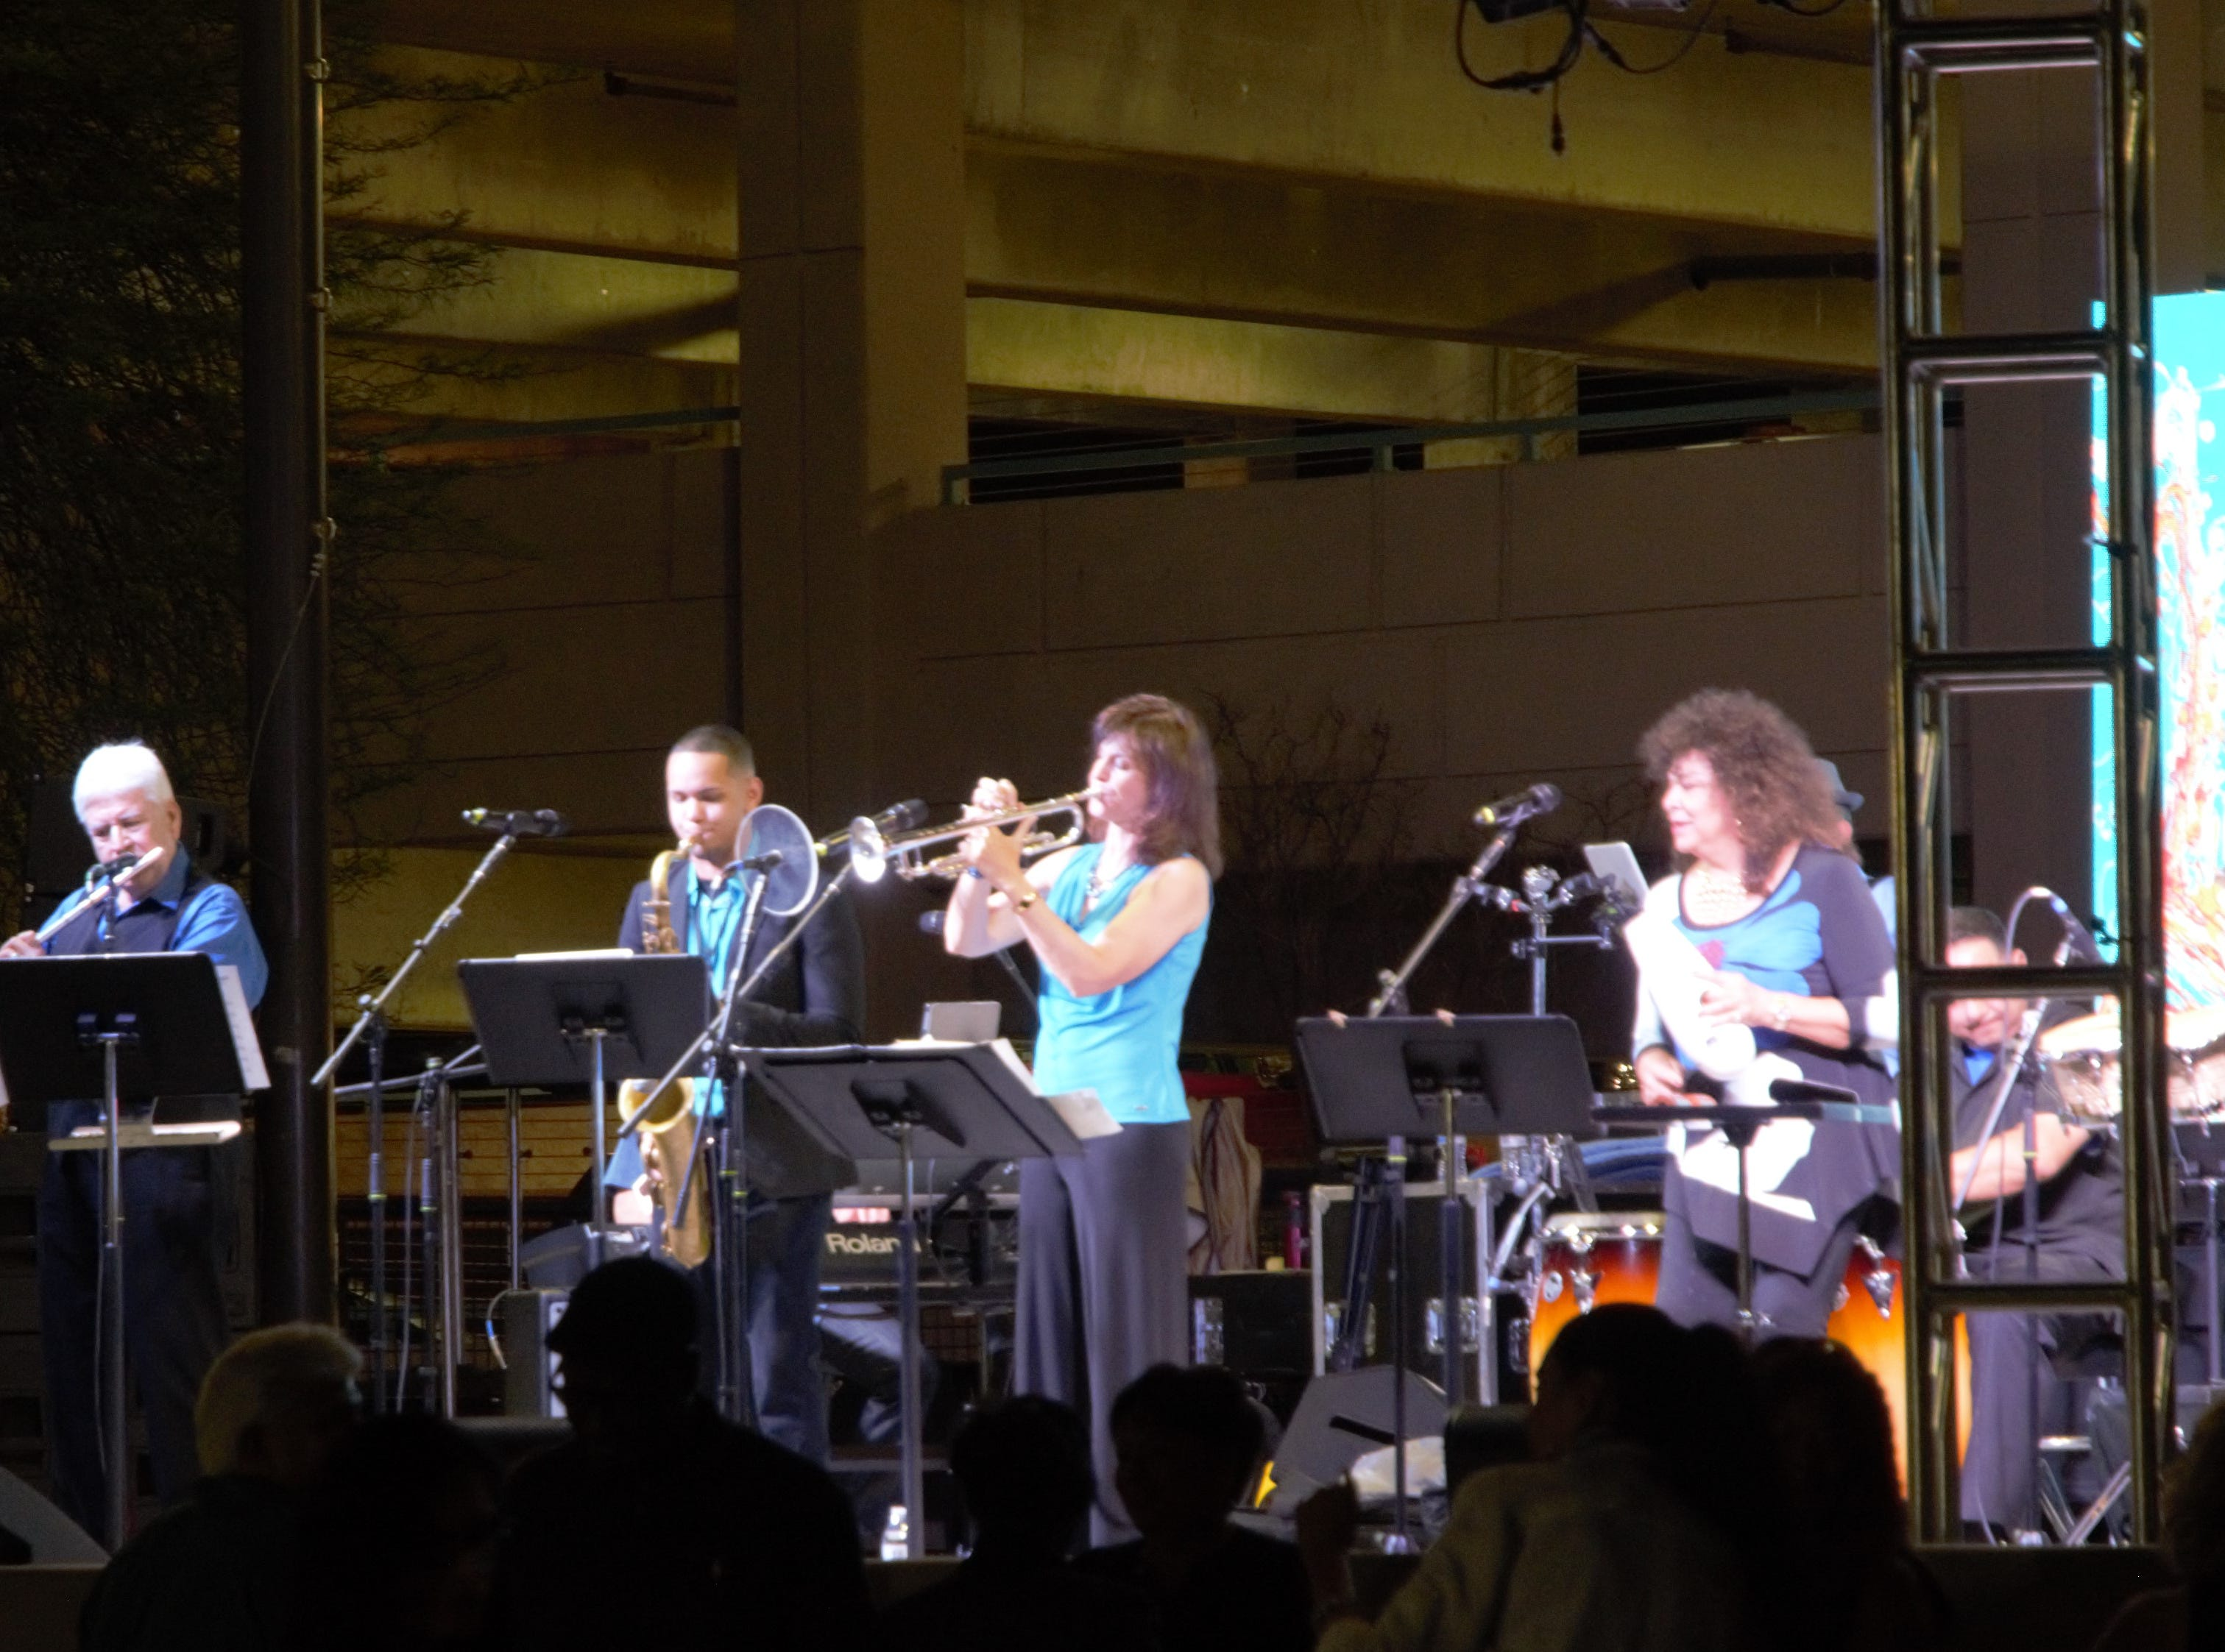 Carmela Ramirez (right) and her band Carmela y Mas play at the Chandler Jazz Festival on April 6, 2019.